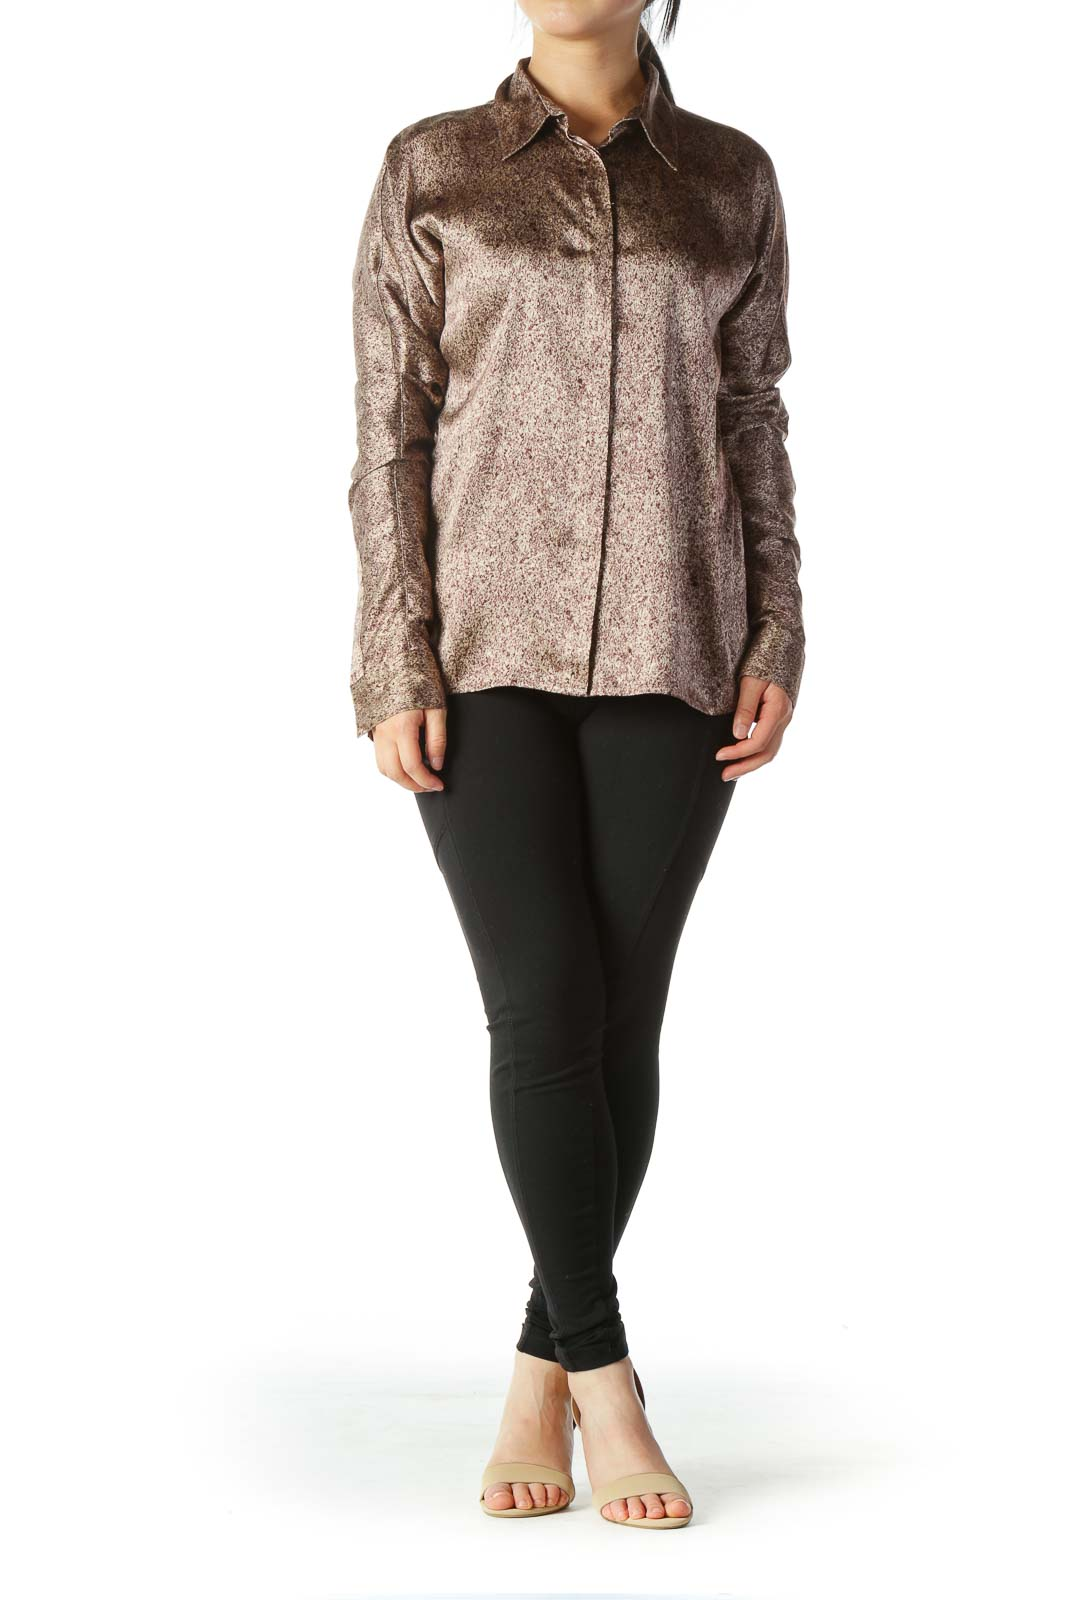 Brown Print Silk Shiny Soft Long Sleeve Stretch Shirt